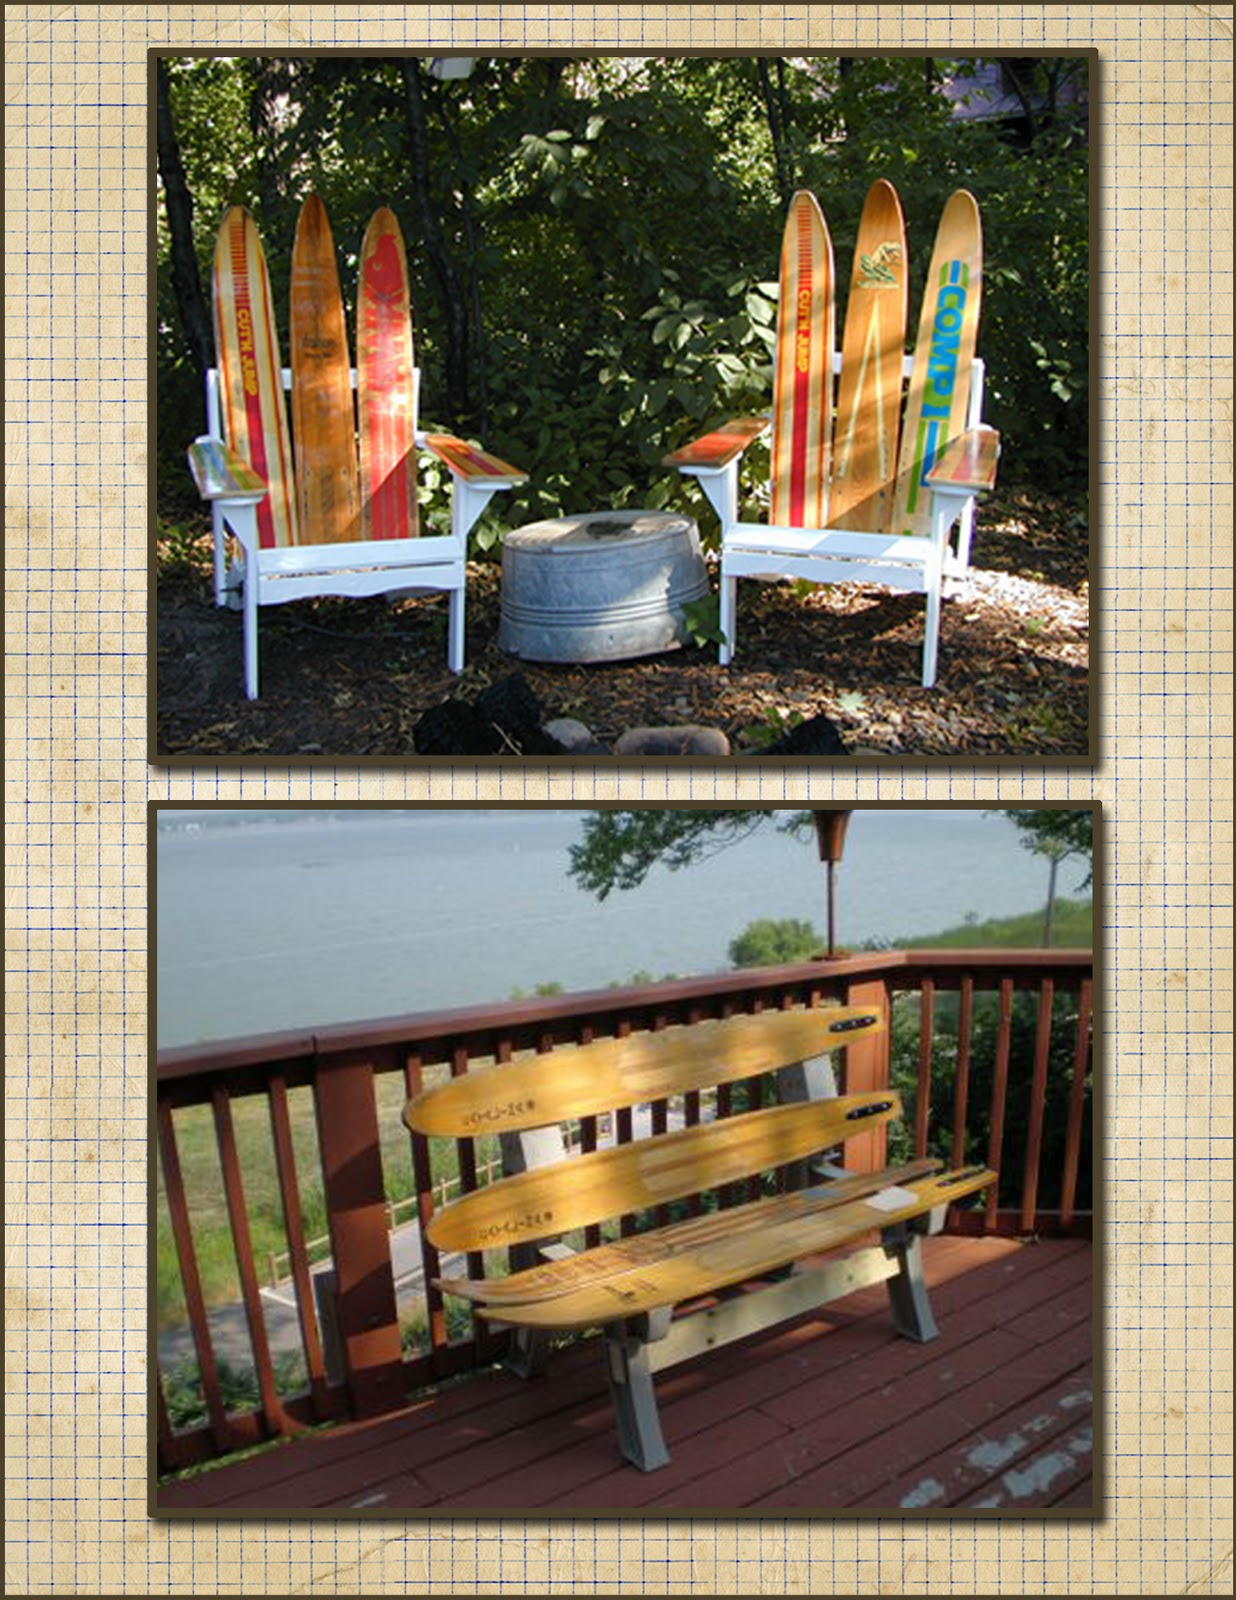 Water Ski Chair Seibels Cottage Decorating With Vintage Water Skis